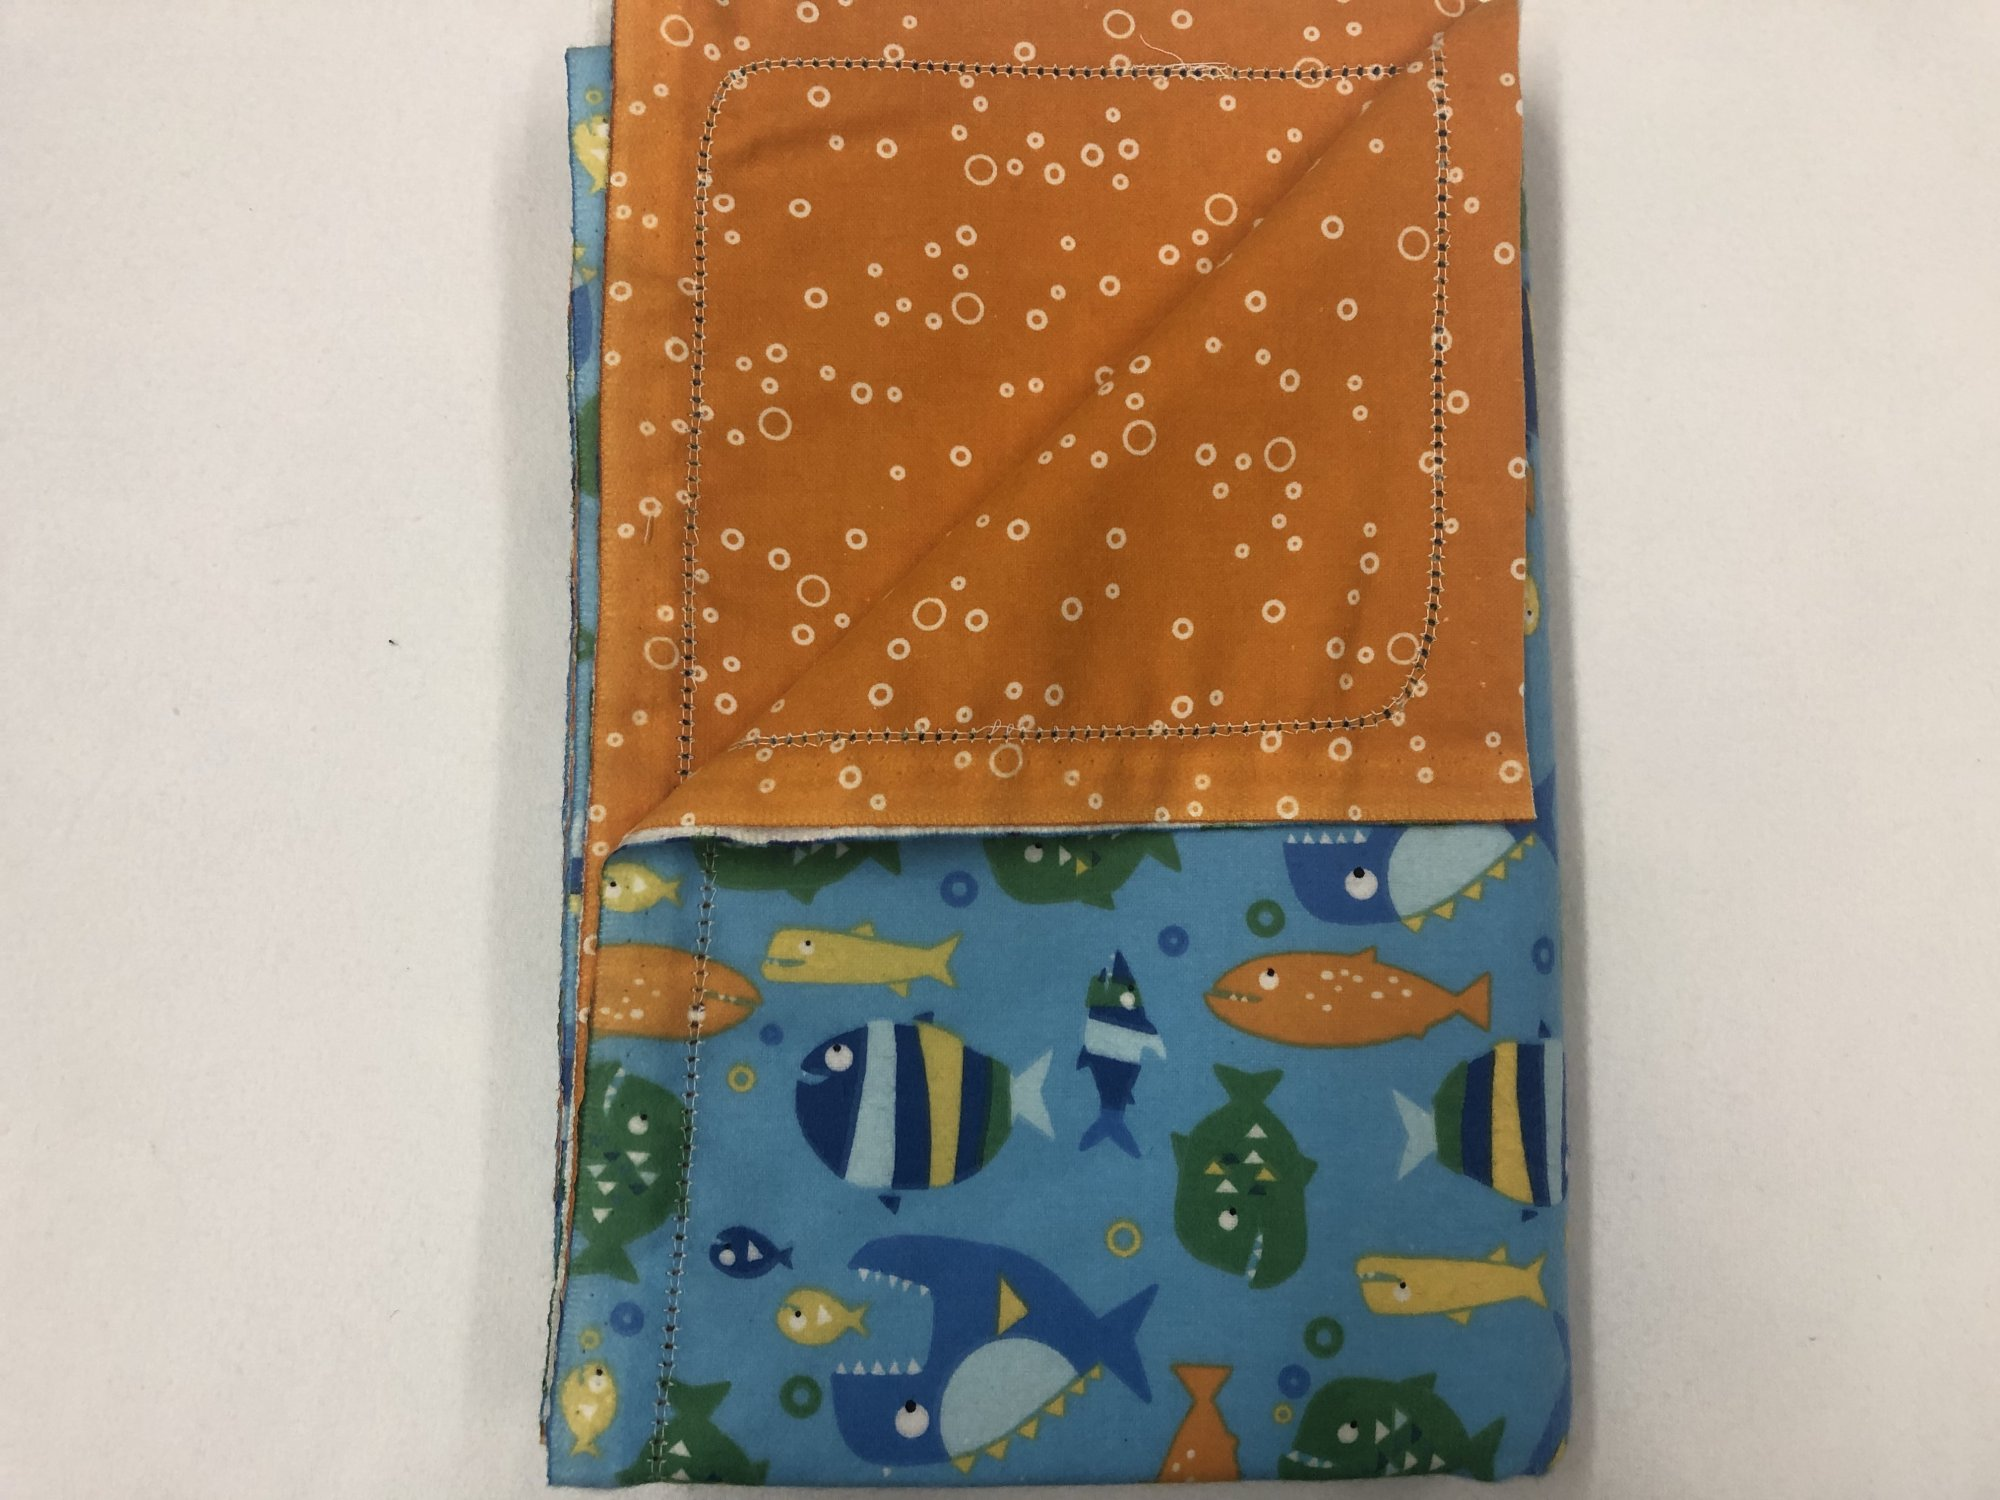 Multi-color fishes on blue background/White bubbles on orange background